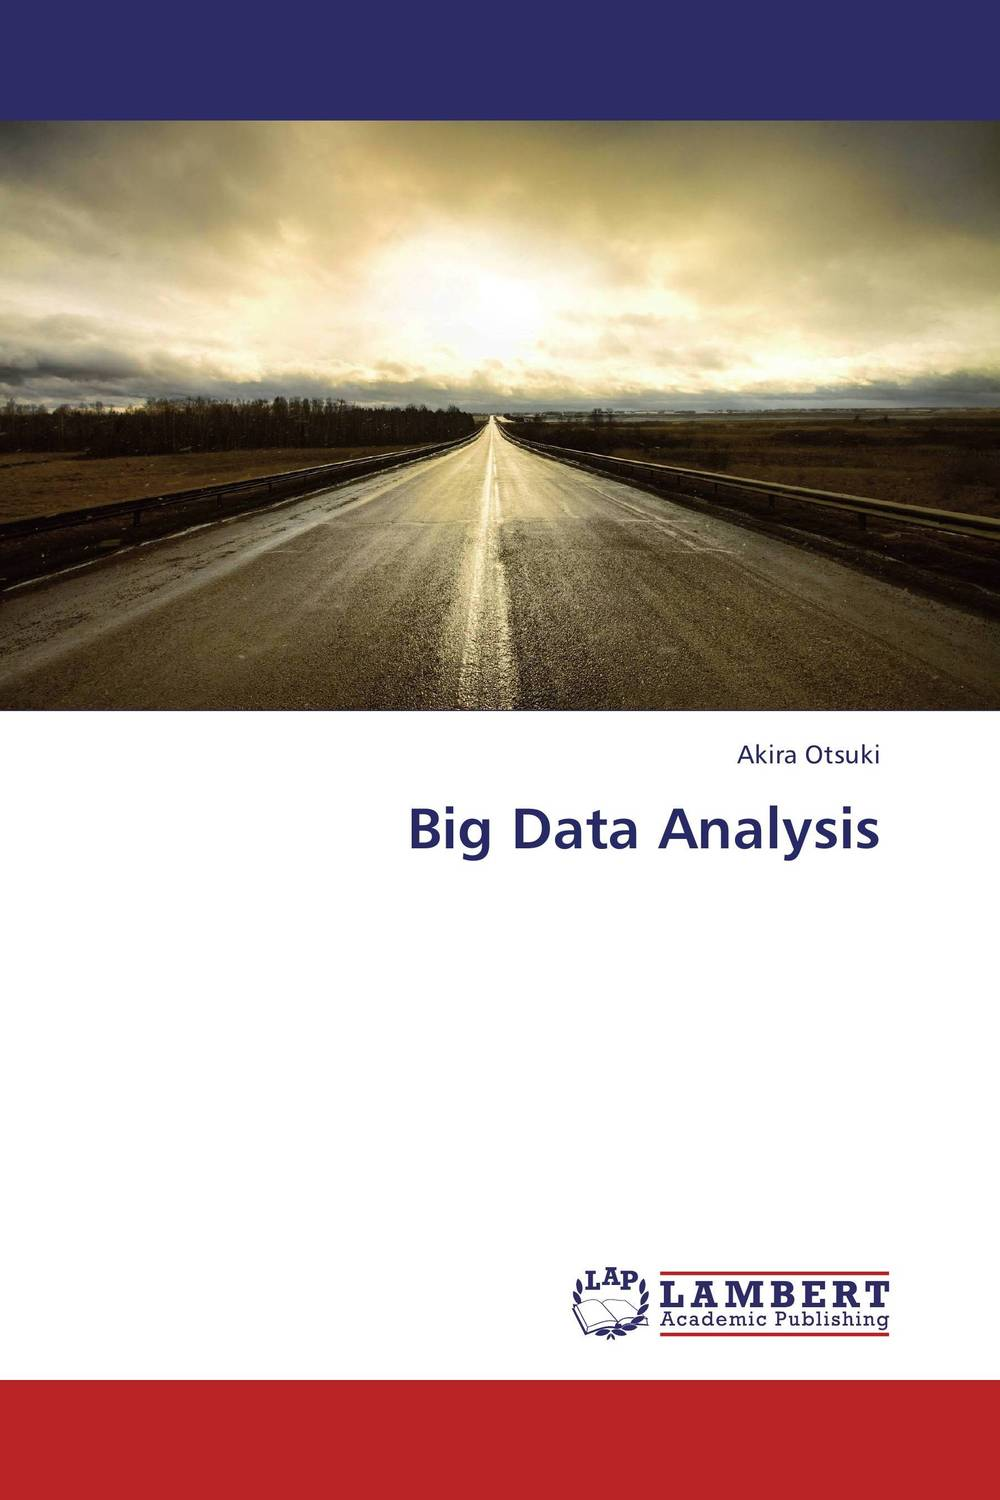 Big Data Analysis evan stubbs big data big innovation enabling competitive differentiation through business analytics